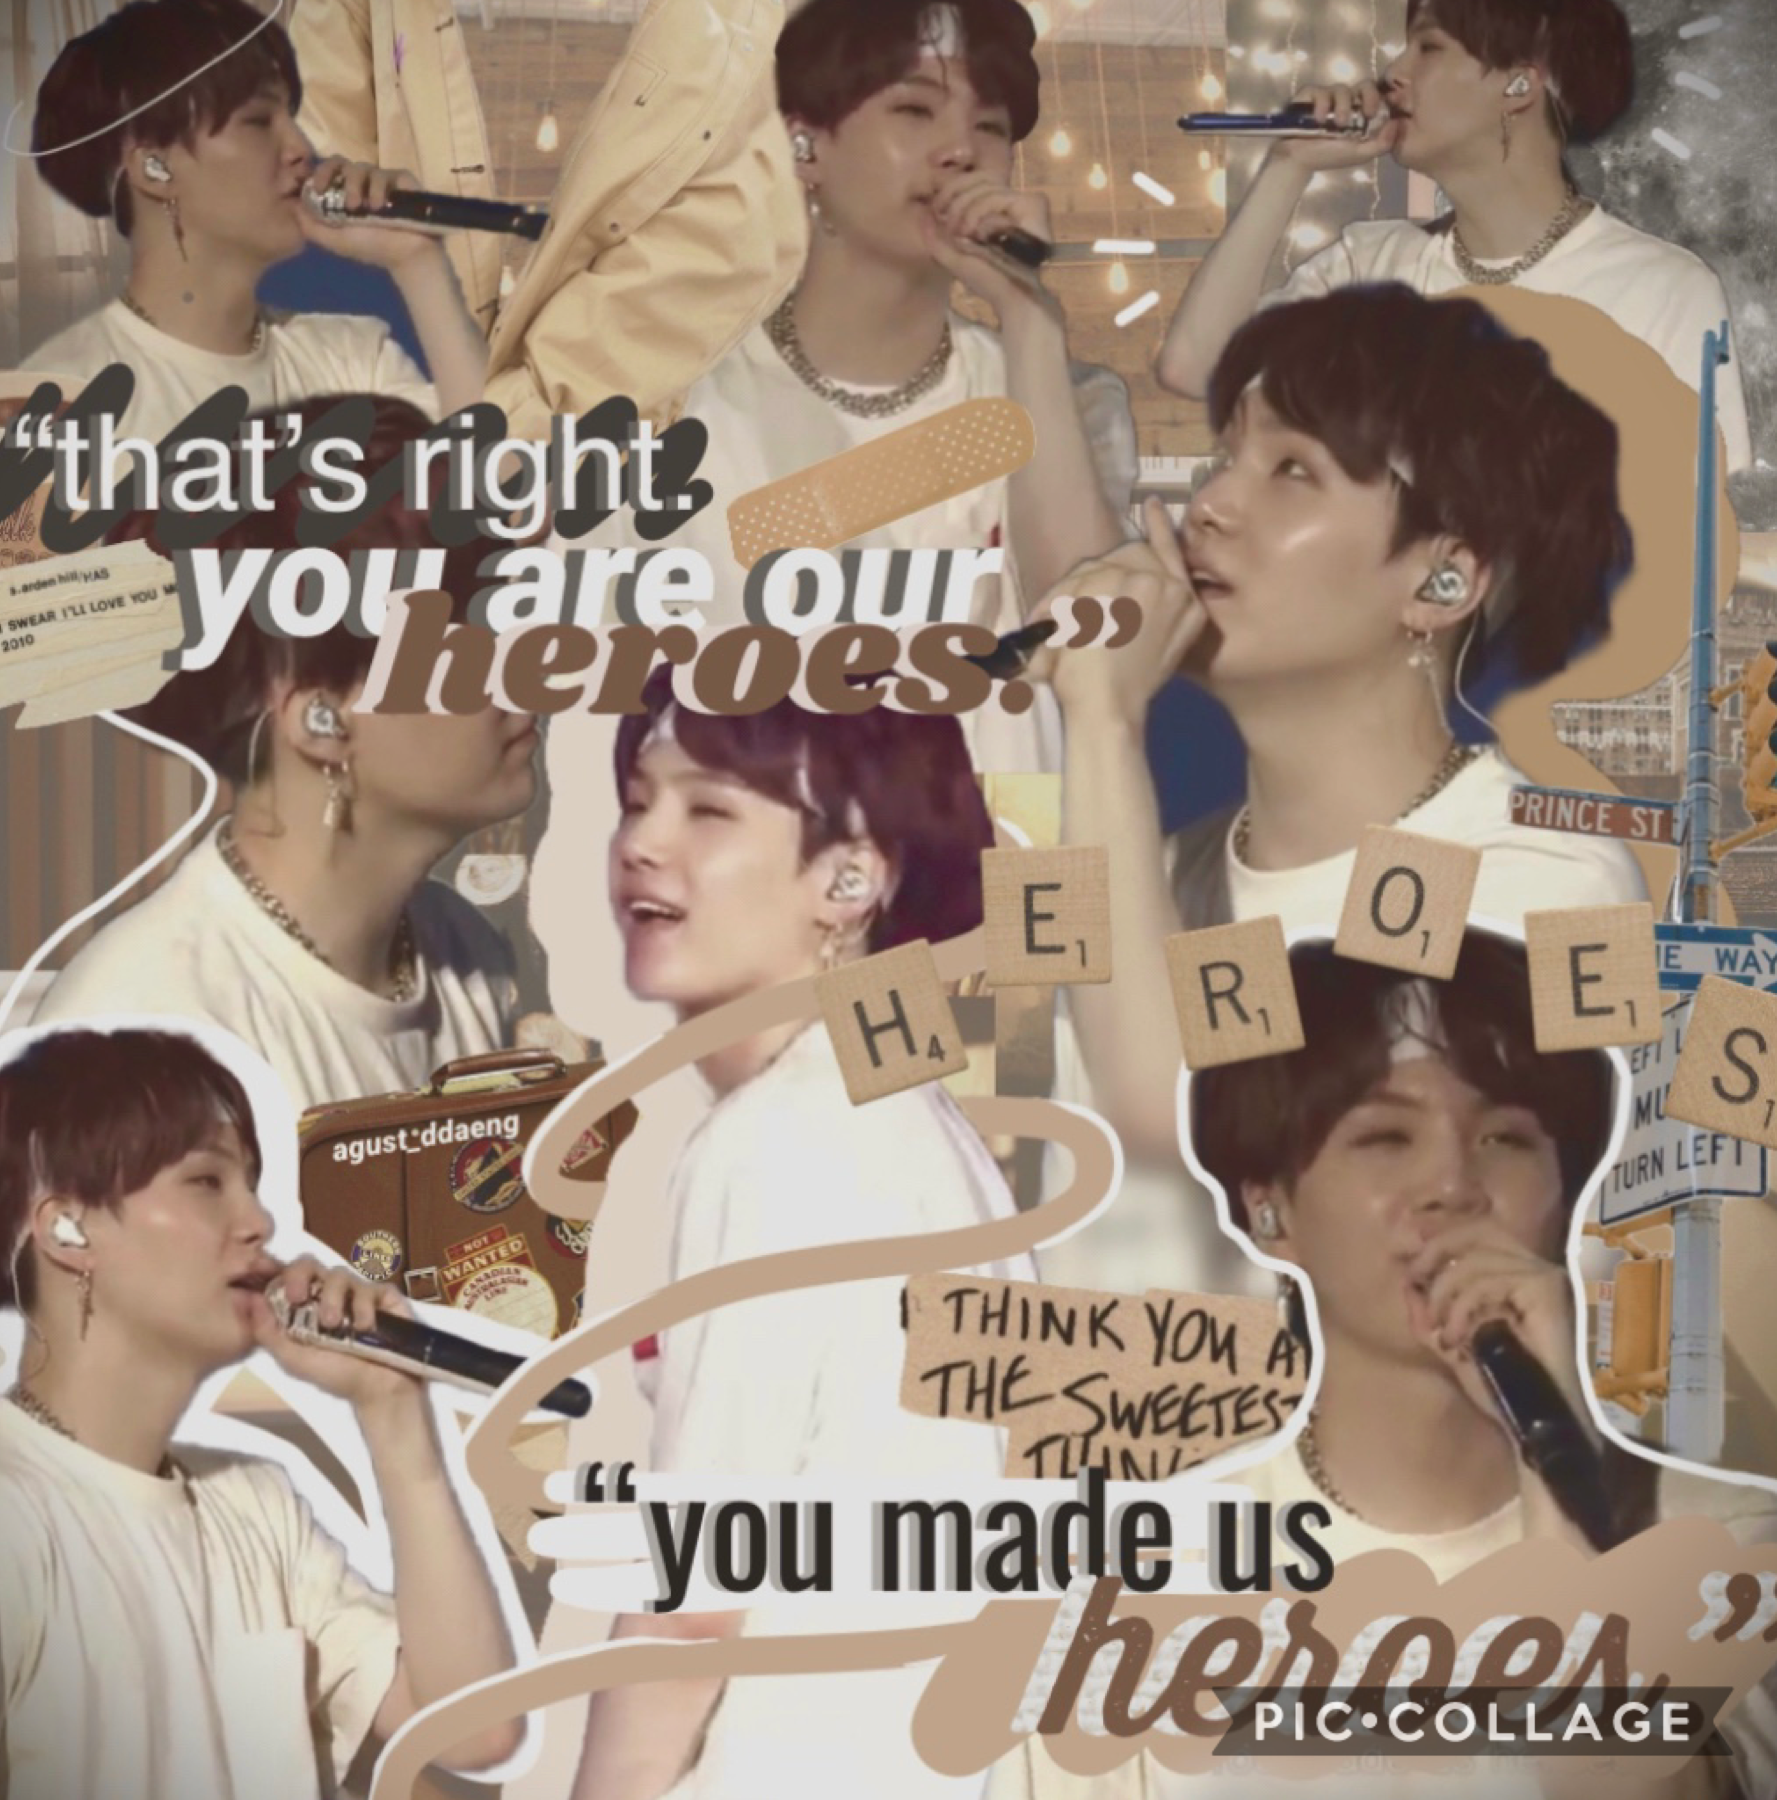 - 🕰 - [ 4 - 20 - 20 ]  ' you are our heroes '  PLEASE I LOVE HIM 🤎 he's so precious omg baby boy   auburn yoongi is starting to become one of my favorites  q&a answers coming soon! <3 ily guys sm please don't forget that 🥺🤎  august💫  -🕰-